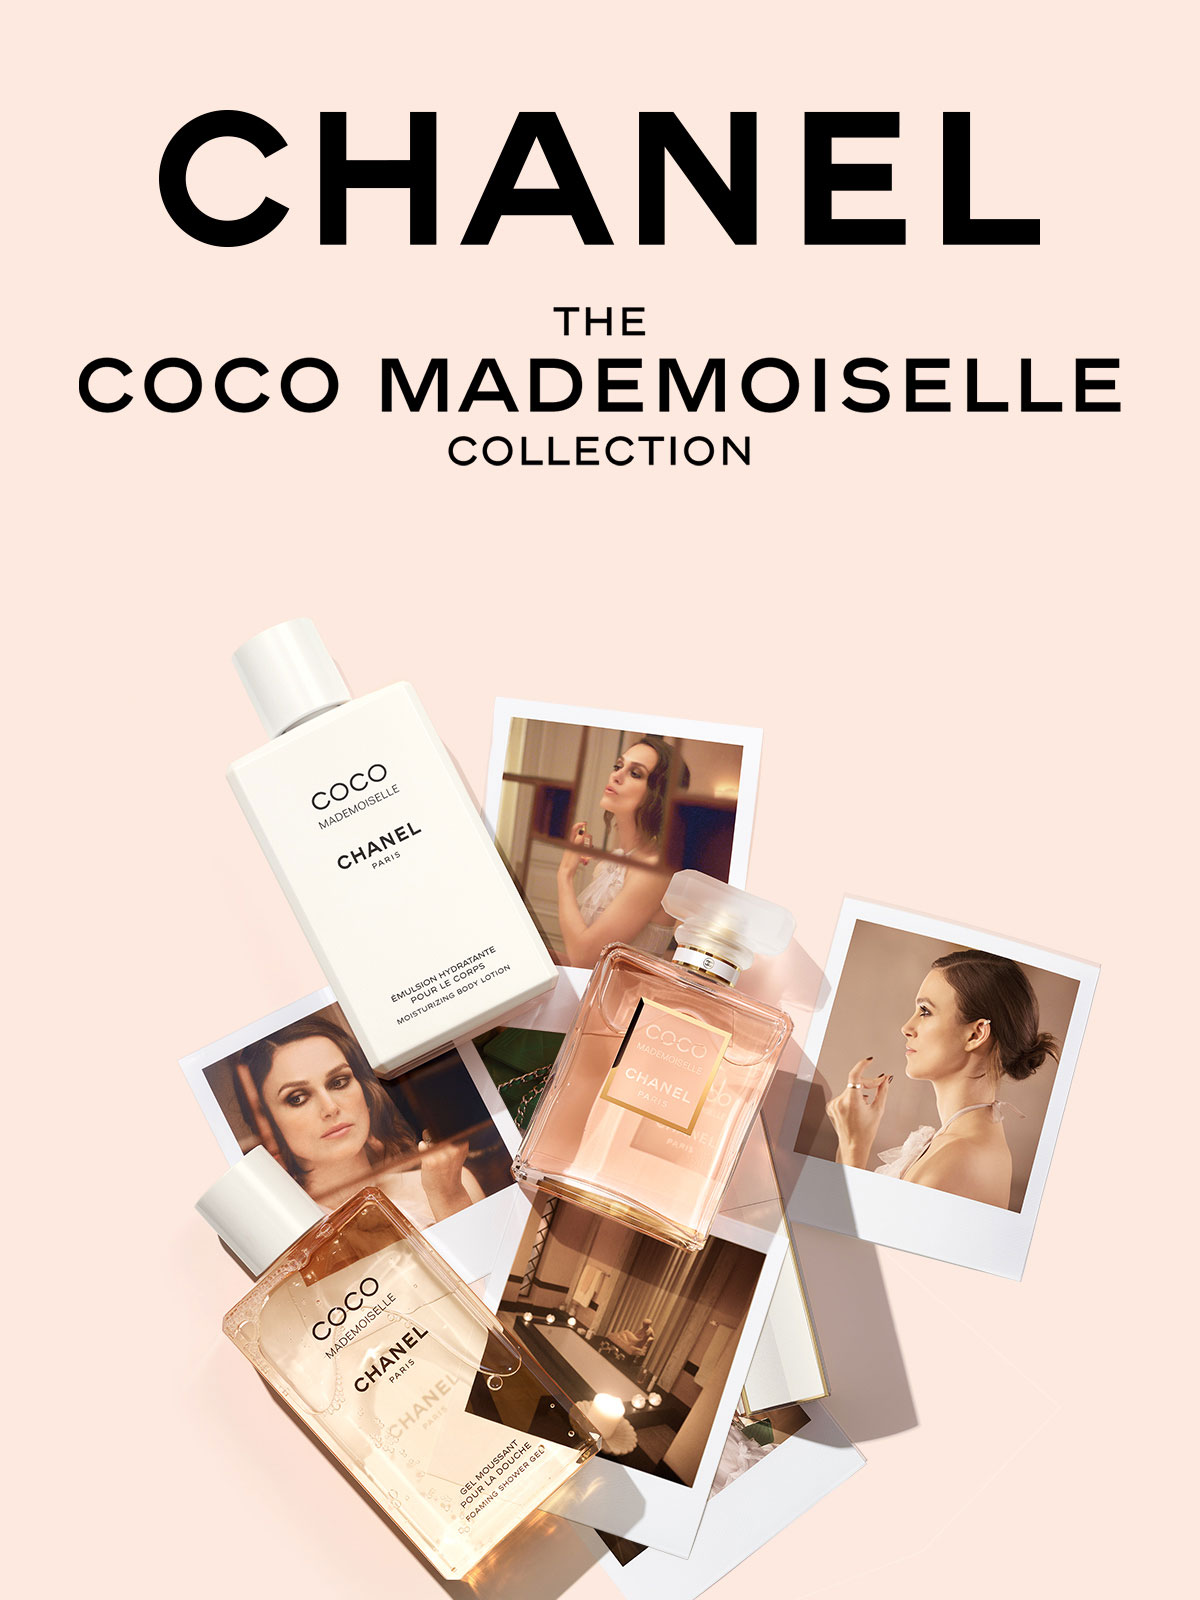 image of Chanel Coco Mademoiselle perfume collection